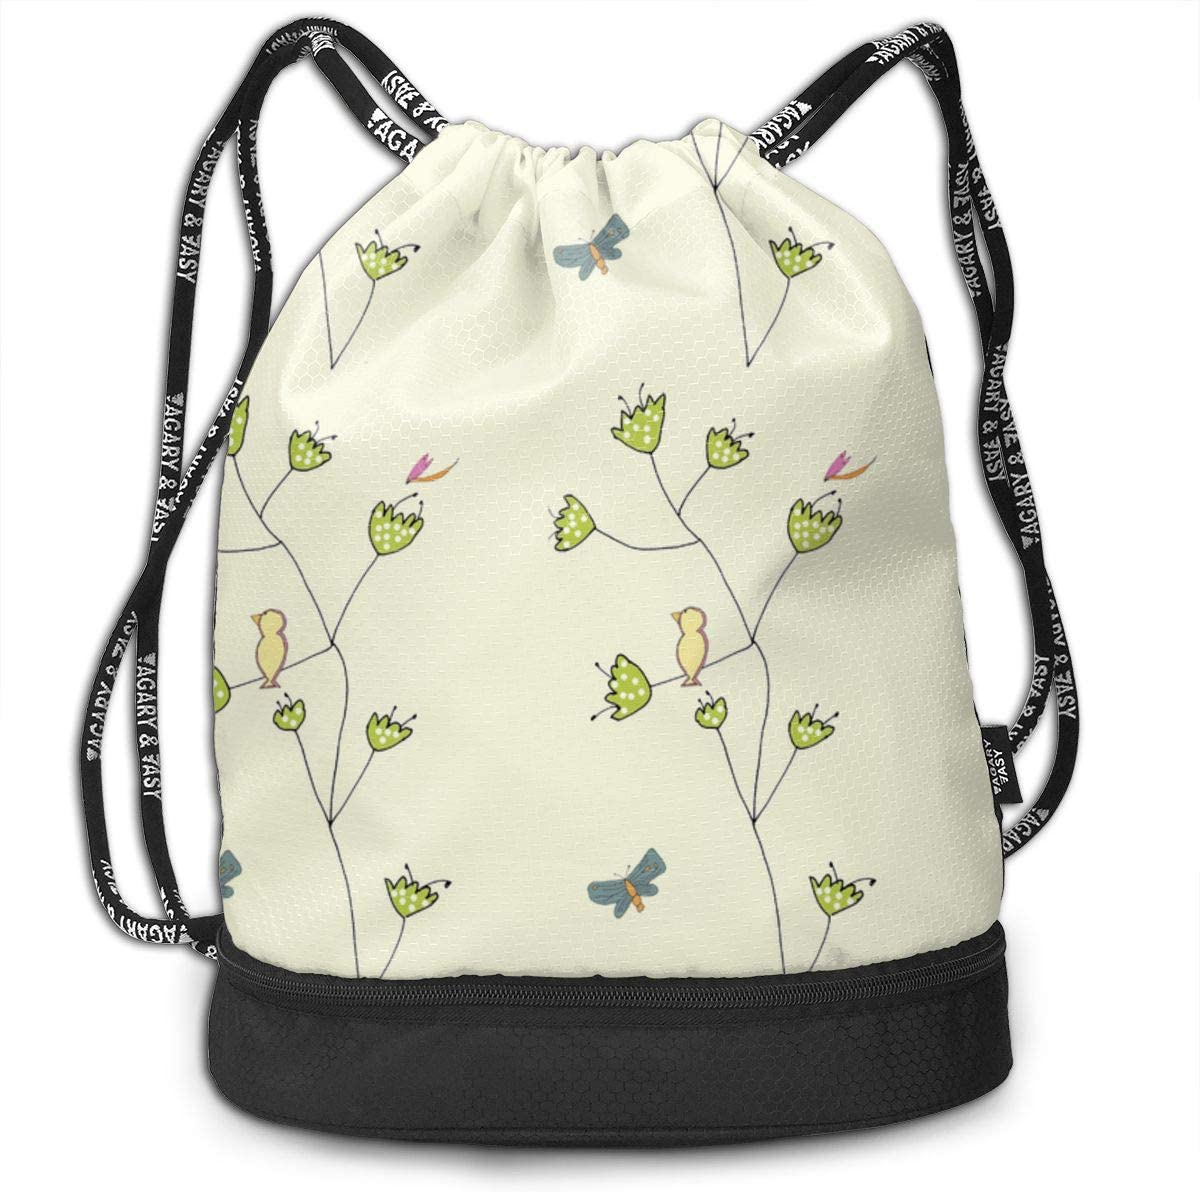 Tulip Birds New Drawstring Backpack Sports Athletic Gym Cinch Sack String Storage Bags for Hiking Travel Beach